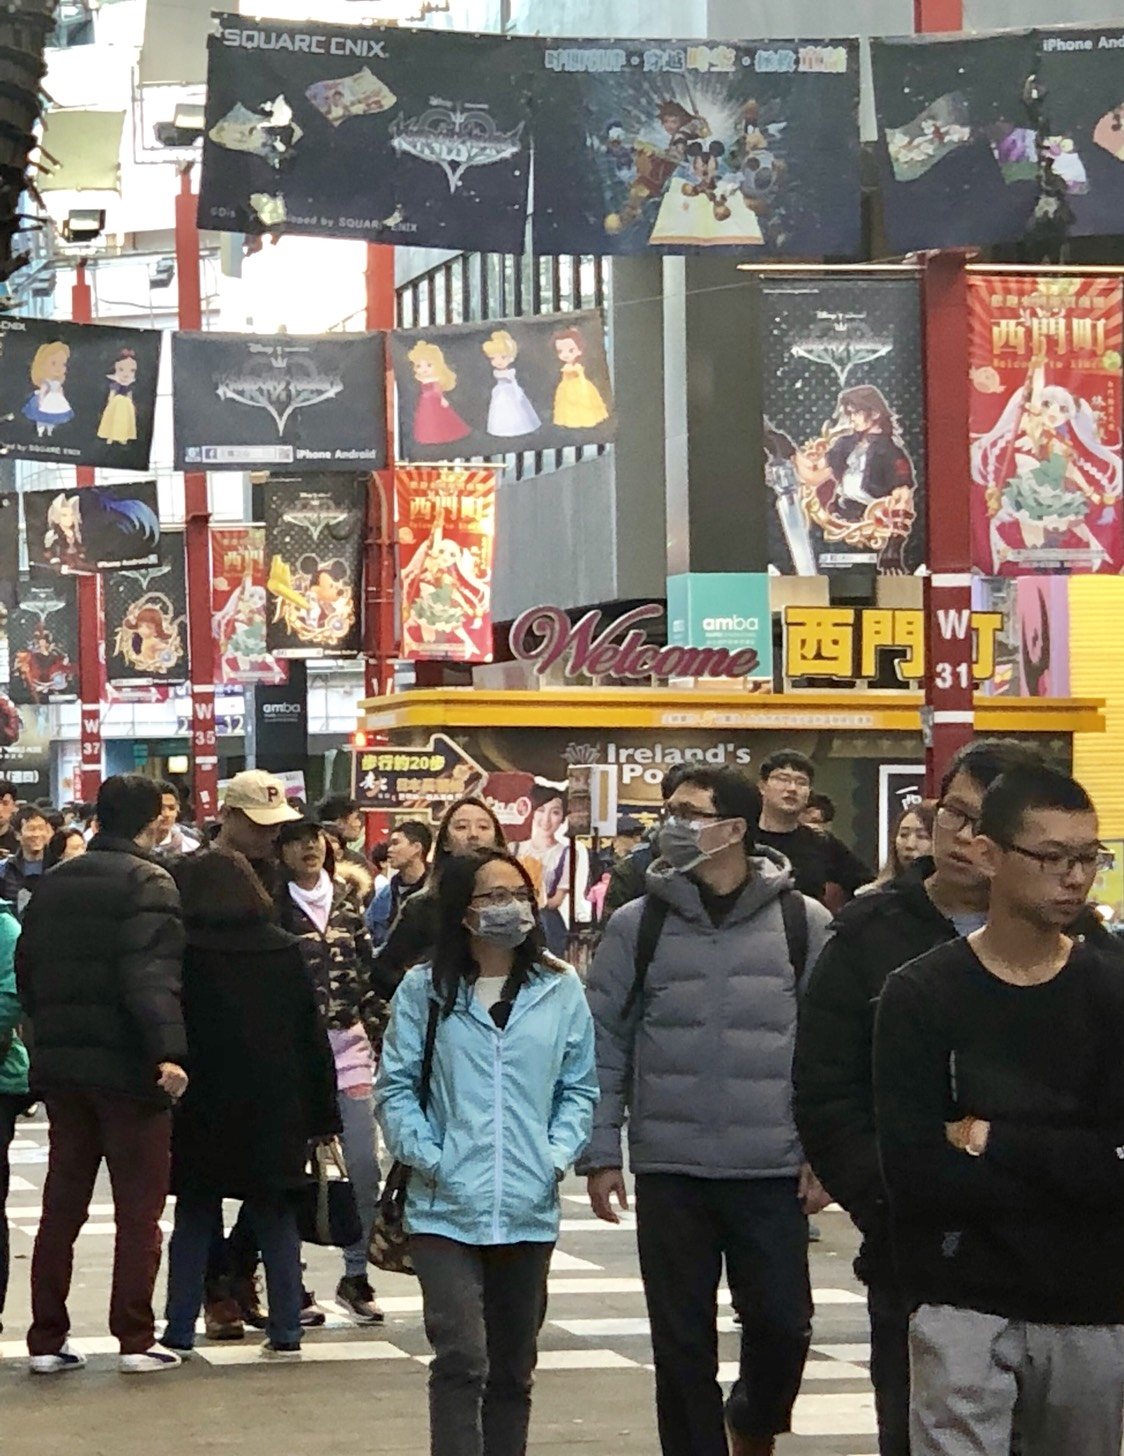 Taipei's downtown Ximending is packed with people going out in a warm sunny day as the recent cold snap which killed close to 300 people is weakening by Sunday, Jan 14, 2018. Lawrence Chung photo